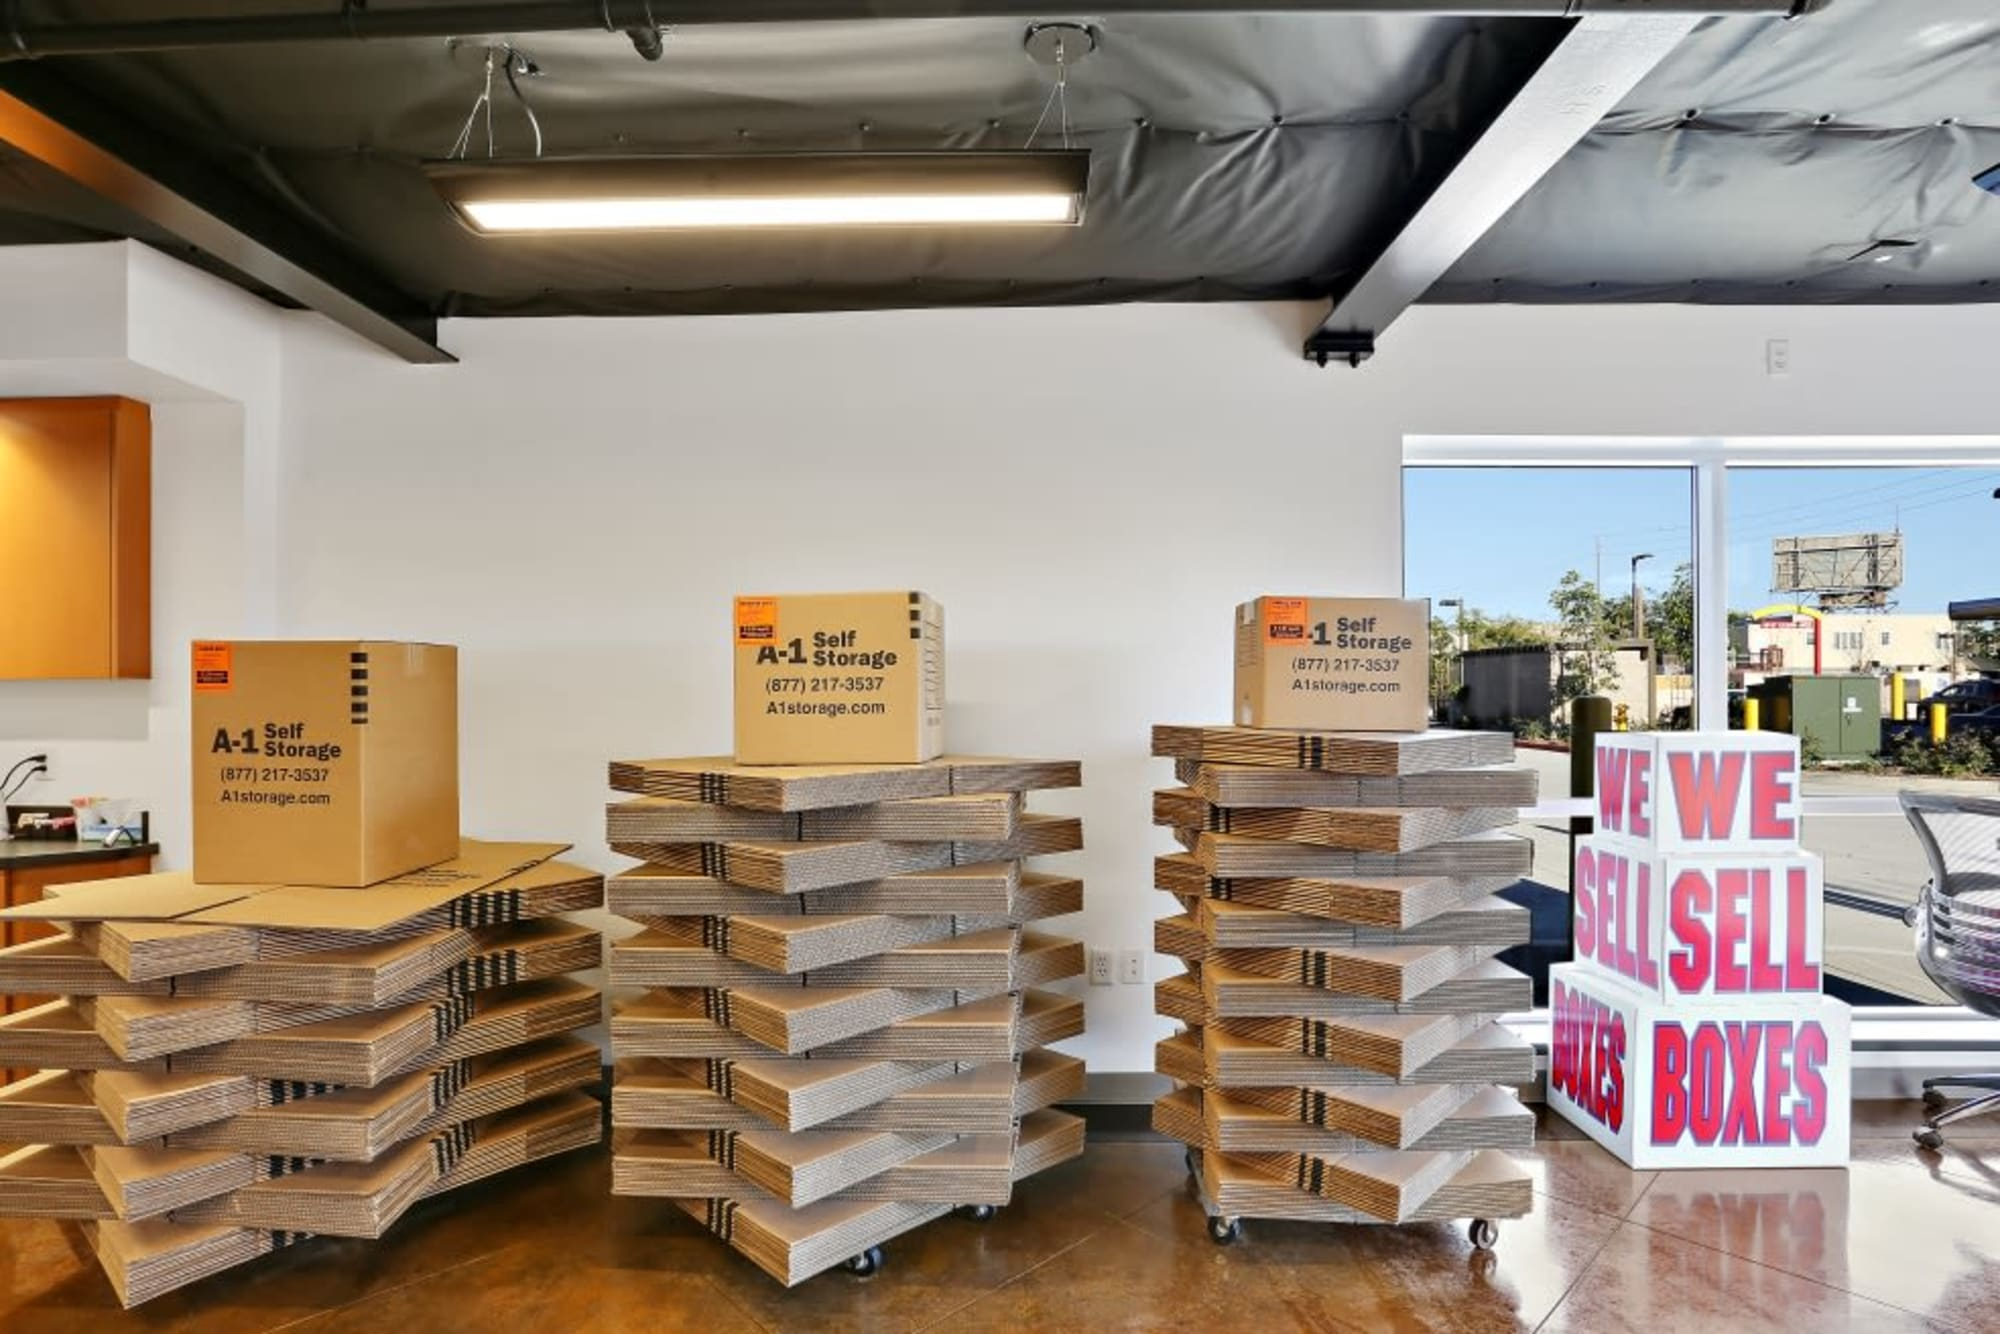 Moving boxes at A-1 Self Storage in San Diego, California